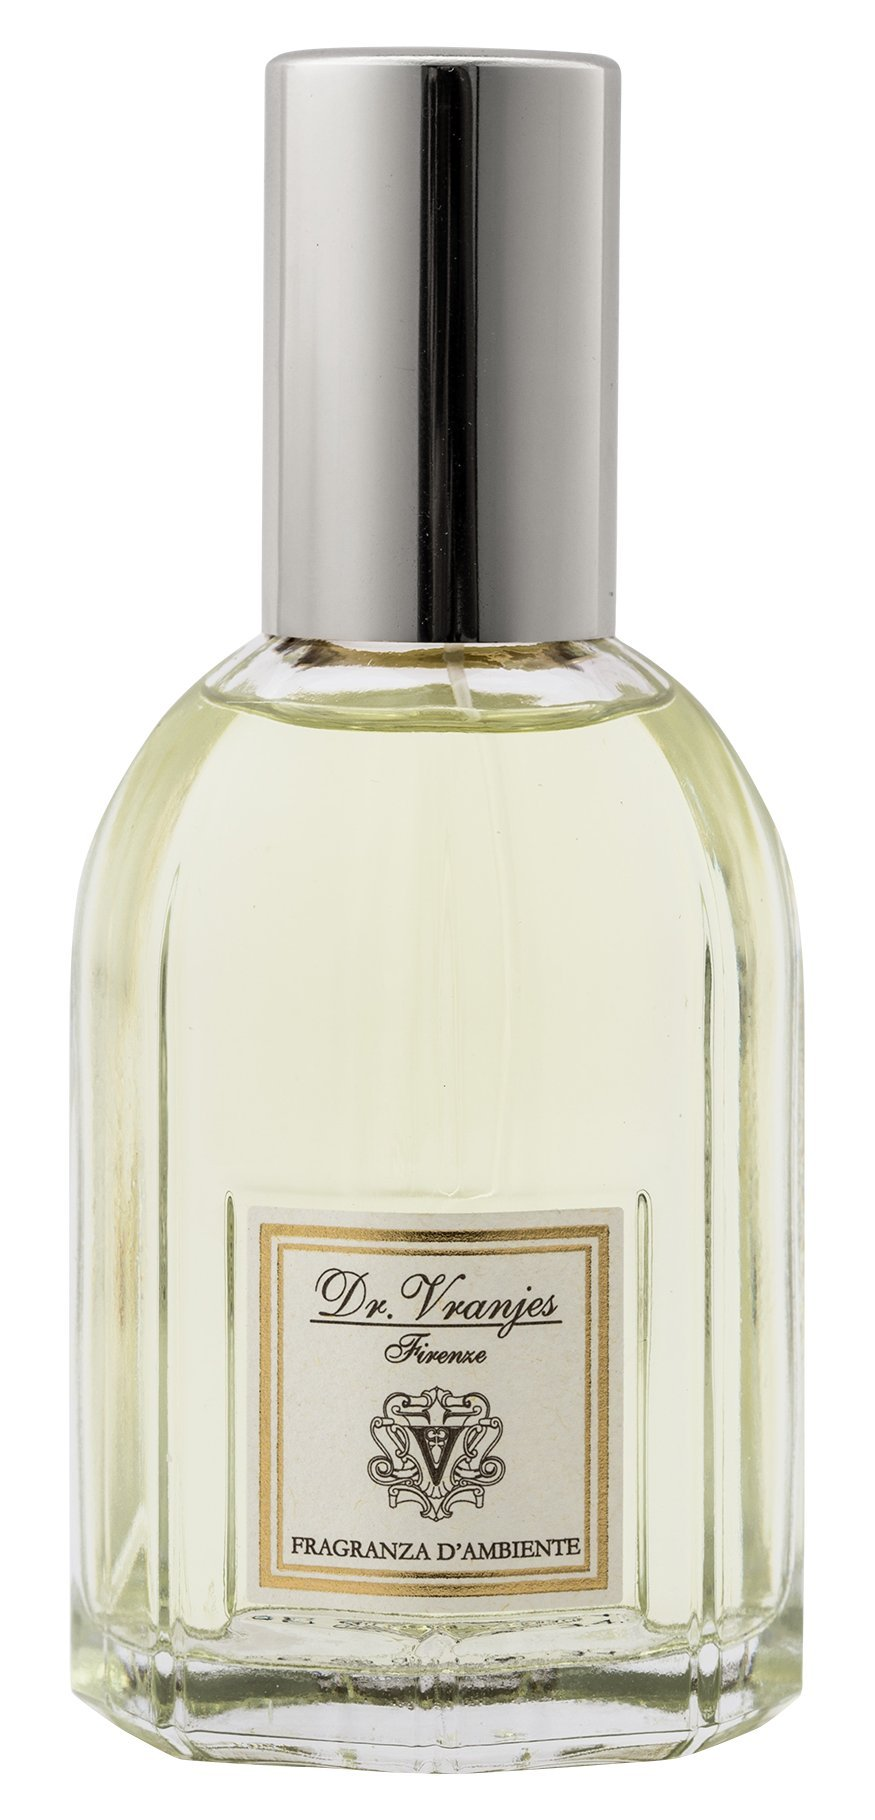 Dr. Vranjes Room Spray 100ml - Ginger and Lime by Dr. Vranjes